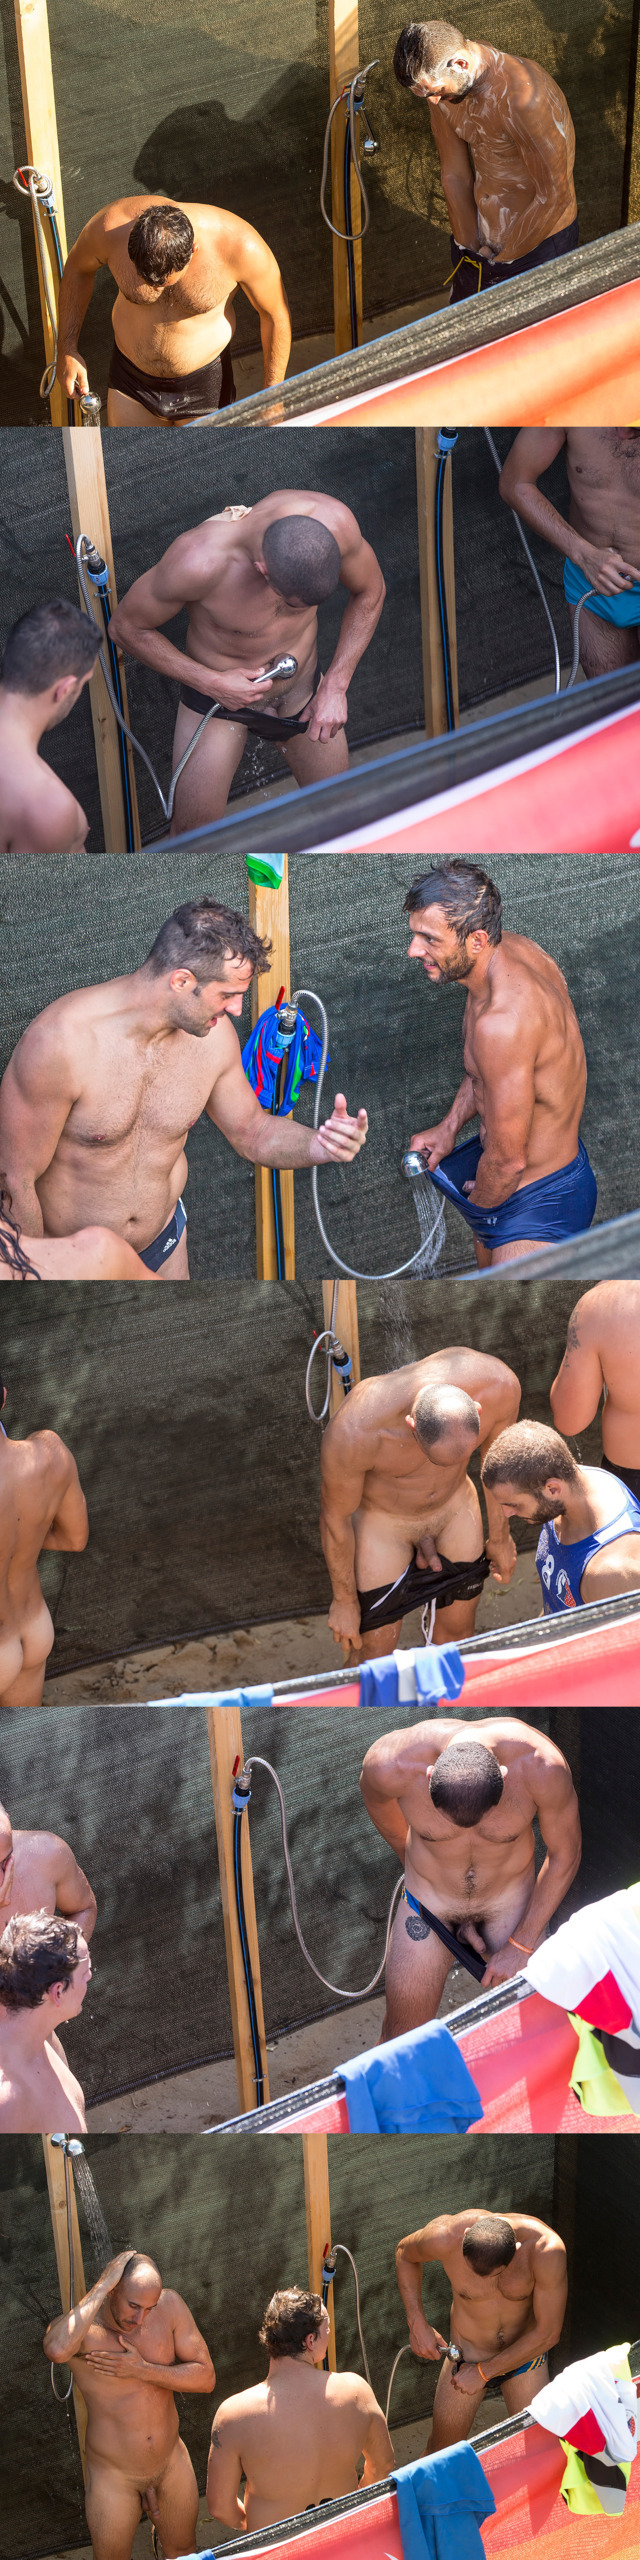 studs caught naked outdoor shower